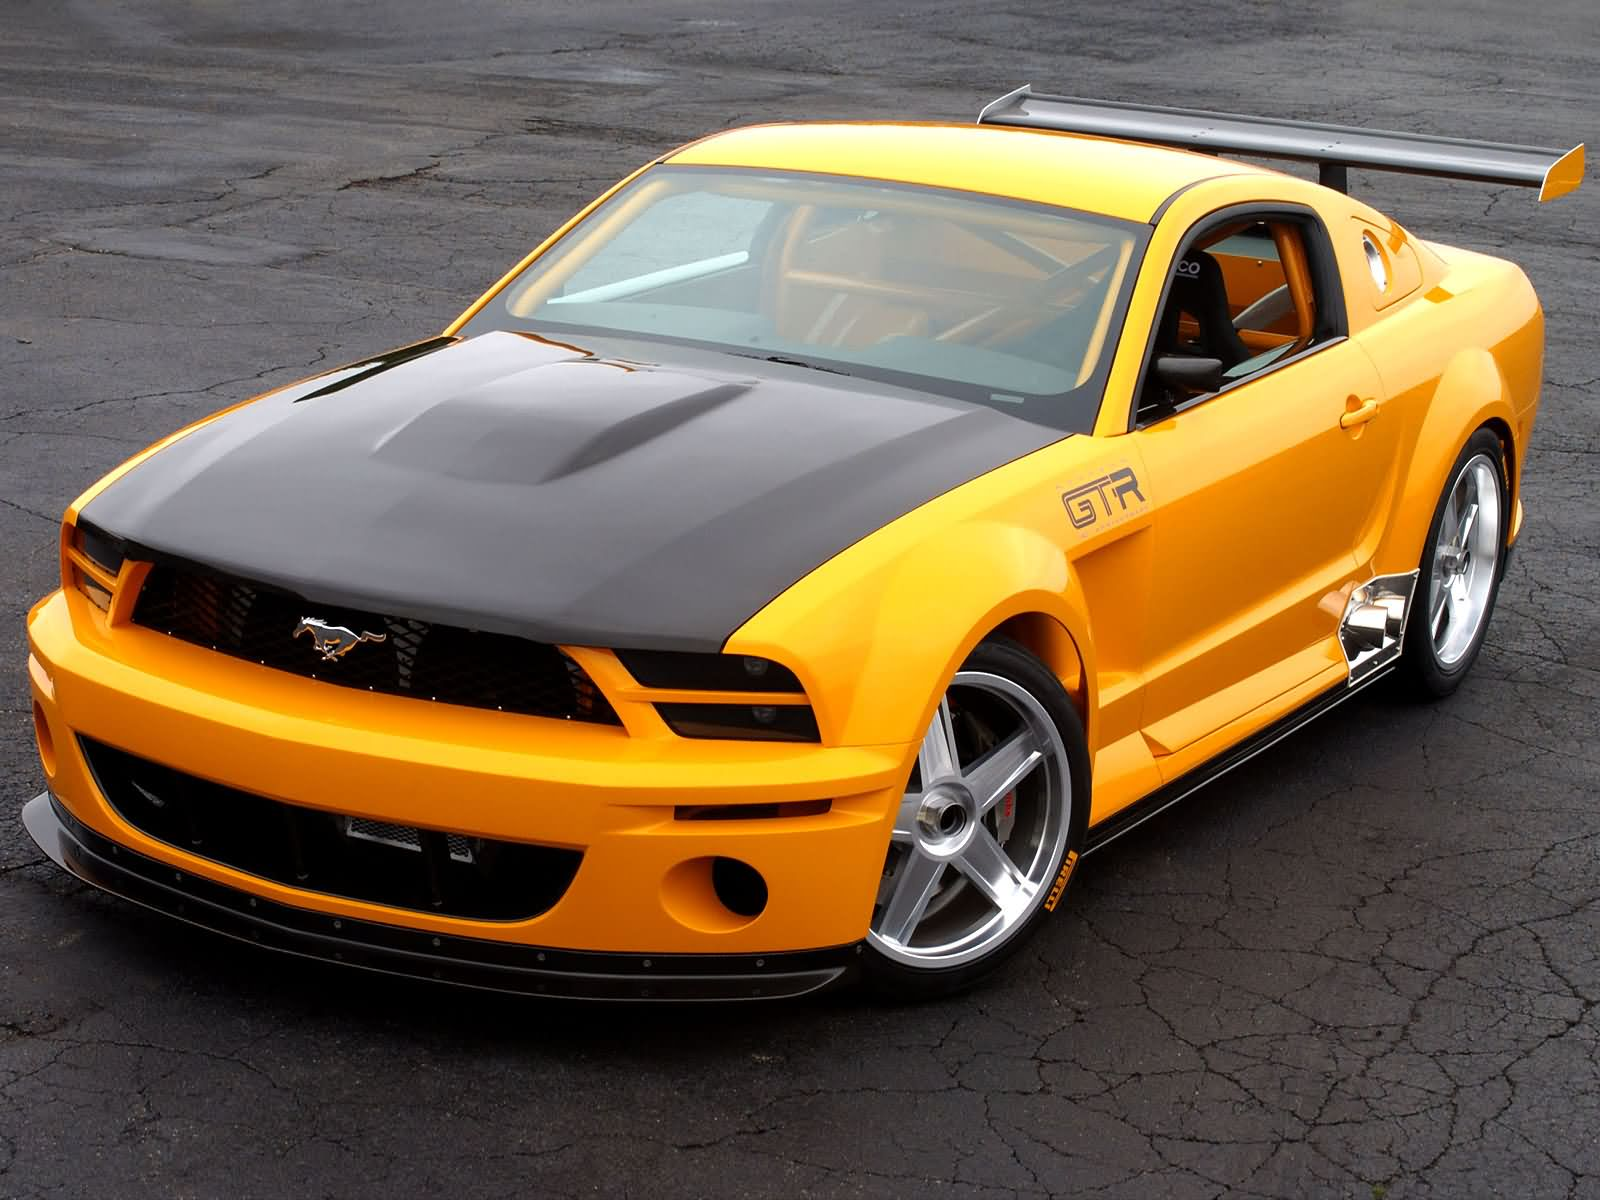 ford mustang gtr-pic. 1